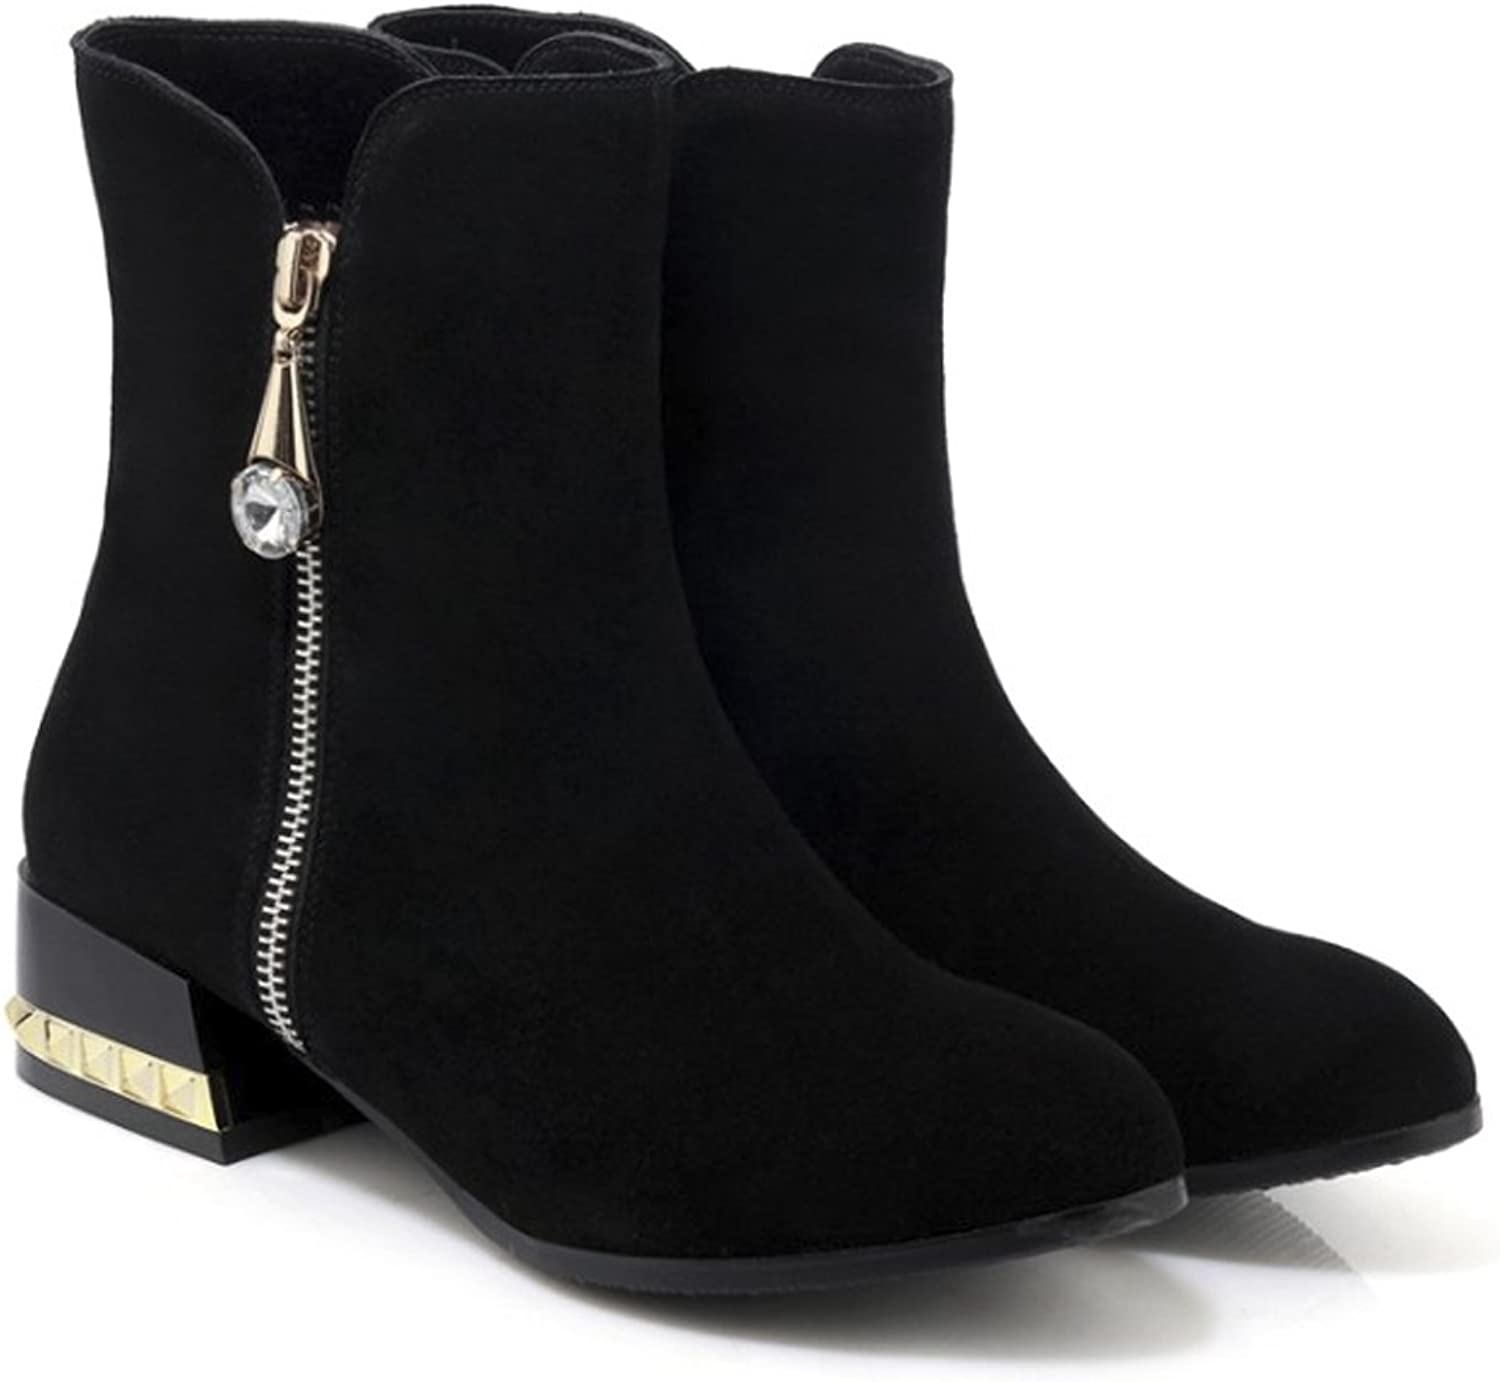 QZUnique Women Fashion Genuine Leather Chunky Heel Round Toe Ankle Booties Zipper Martin Boots